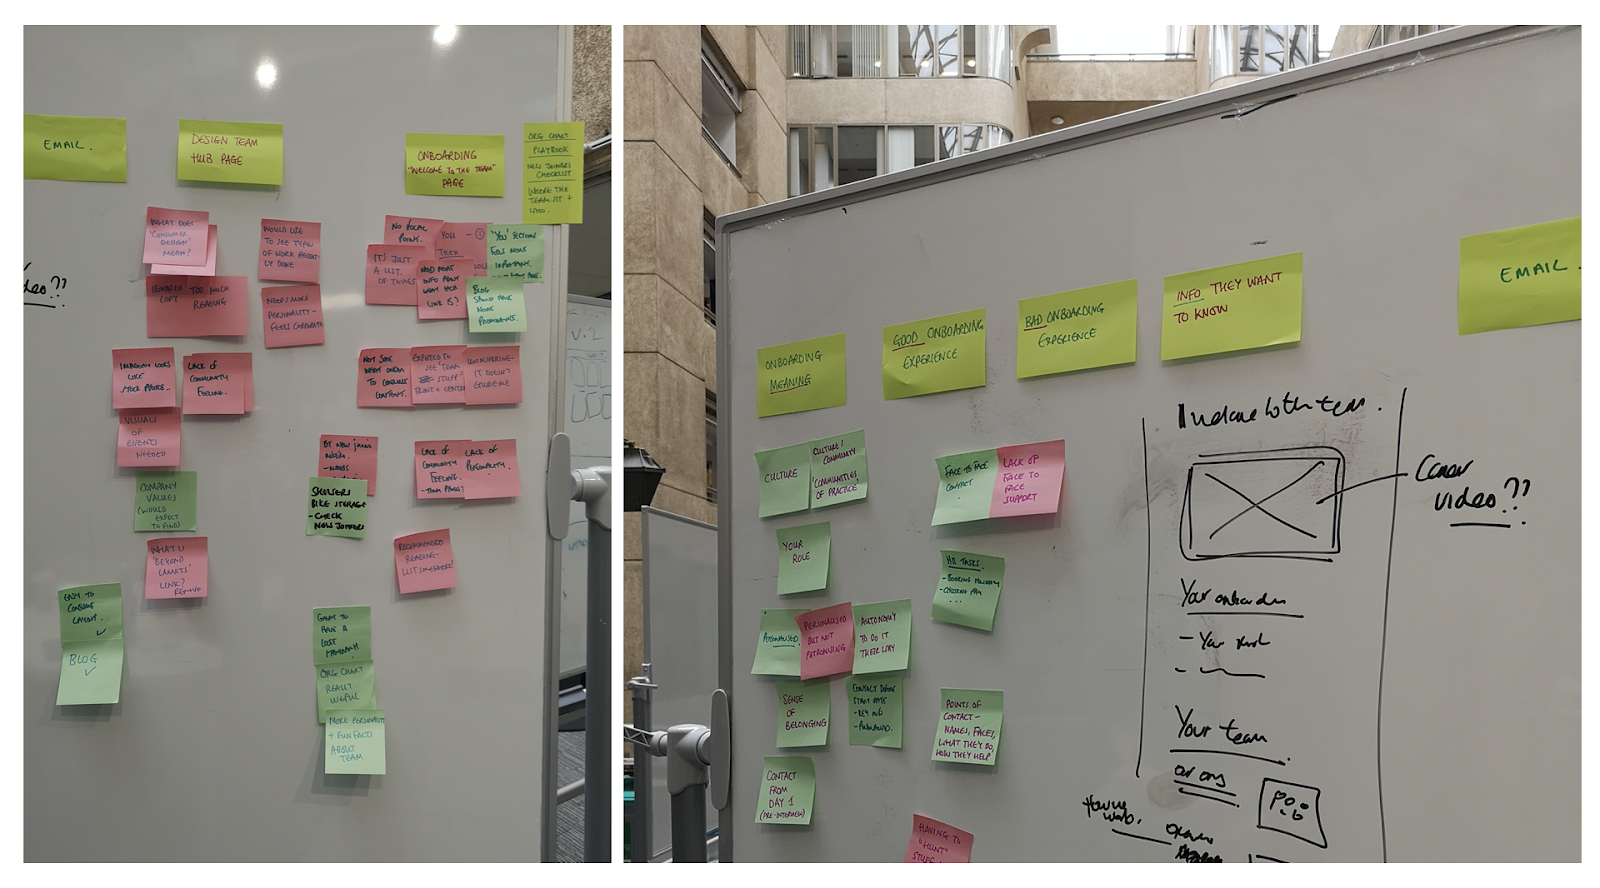 An image of a whiteboard containing post-it notes listing what makes a good or bad onboarding experience.